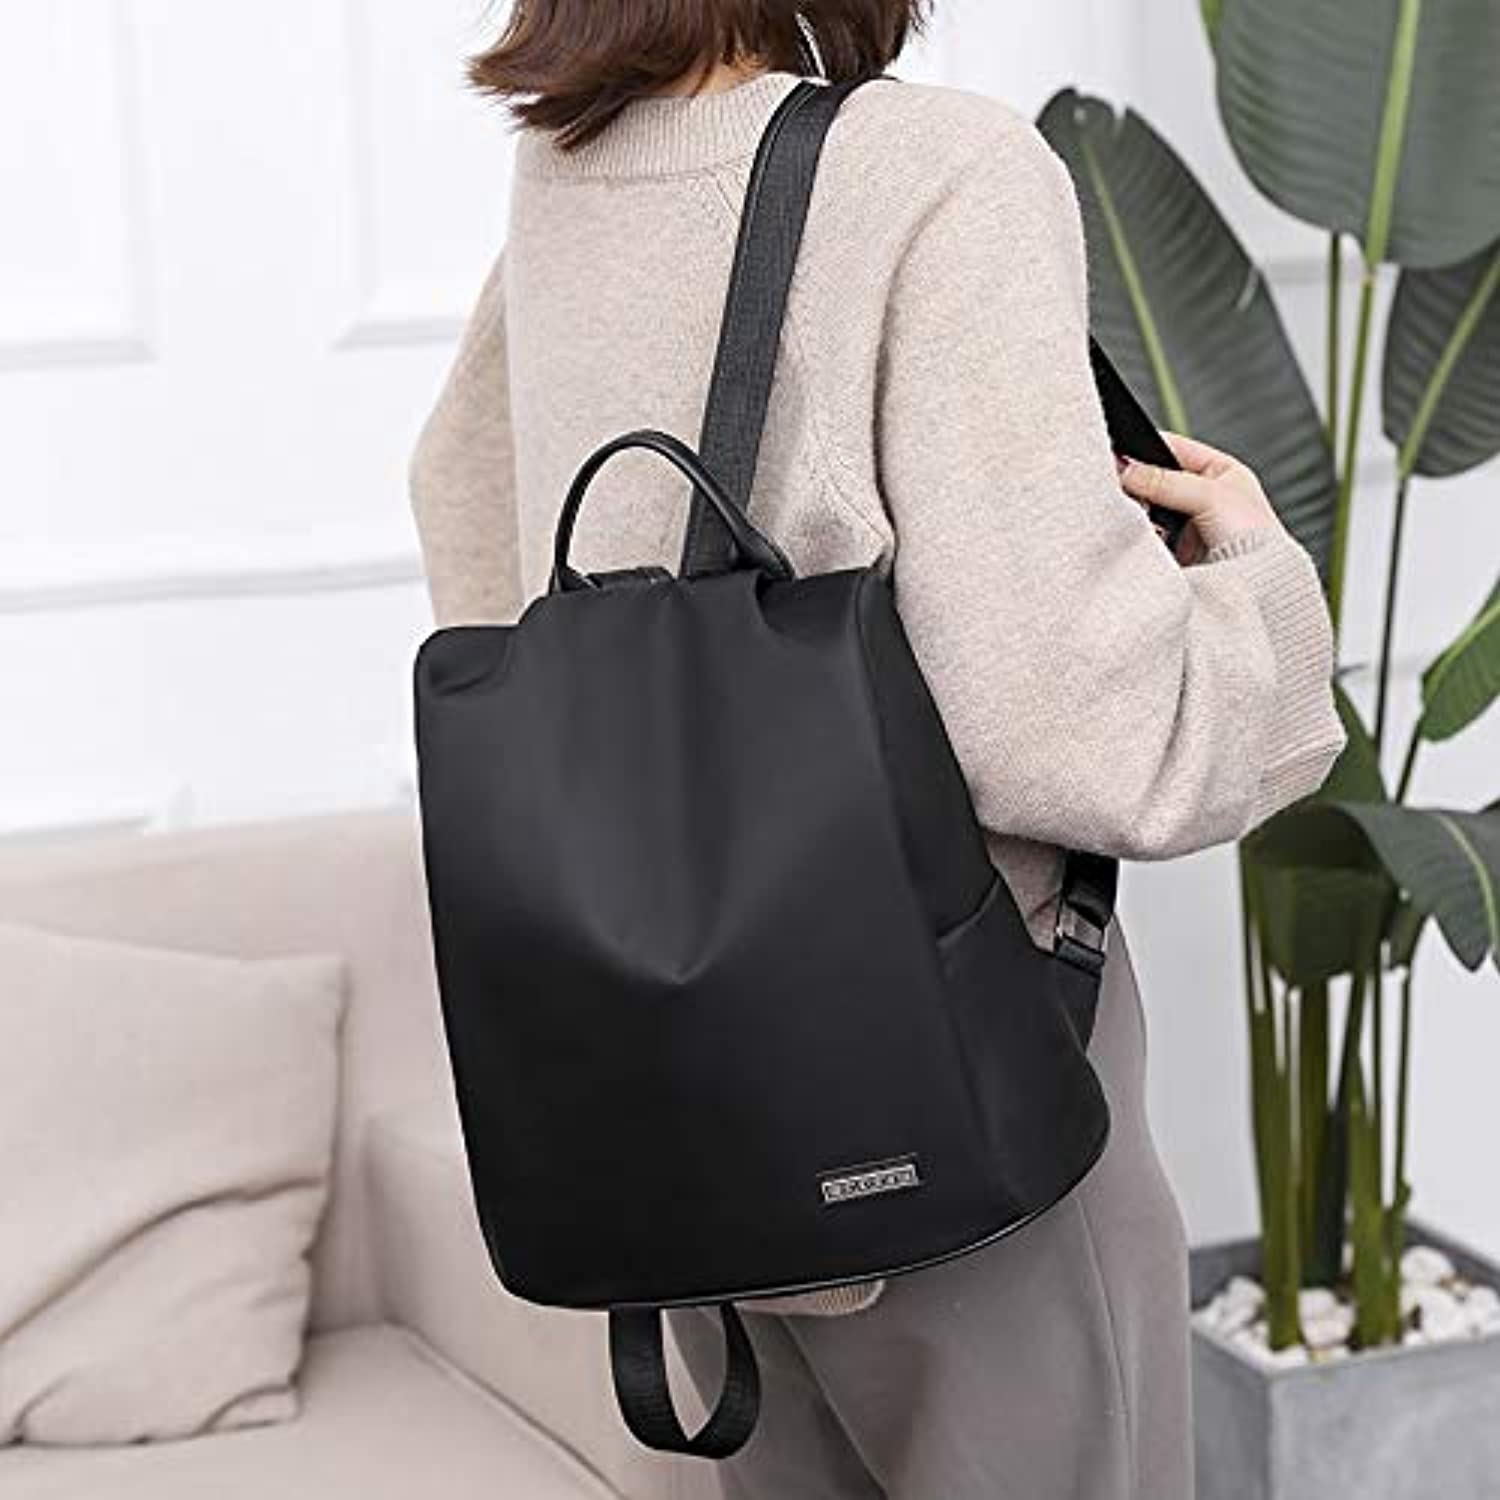 RYRYBH Antitheft Backpack Female Korean Version Of The Wild Waterproof Oxford Cloth College Wind Bag New Travel Small Backpack backpack (color   Black)